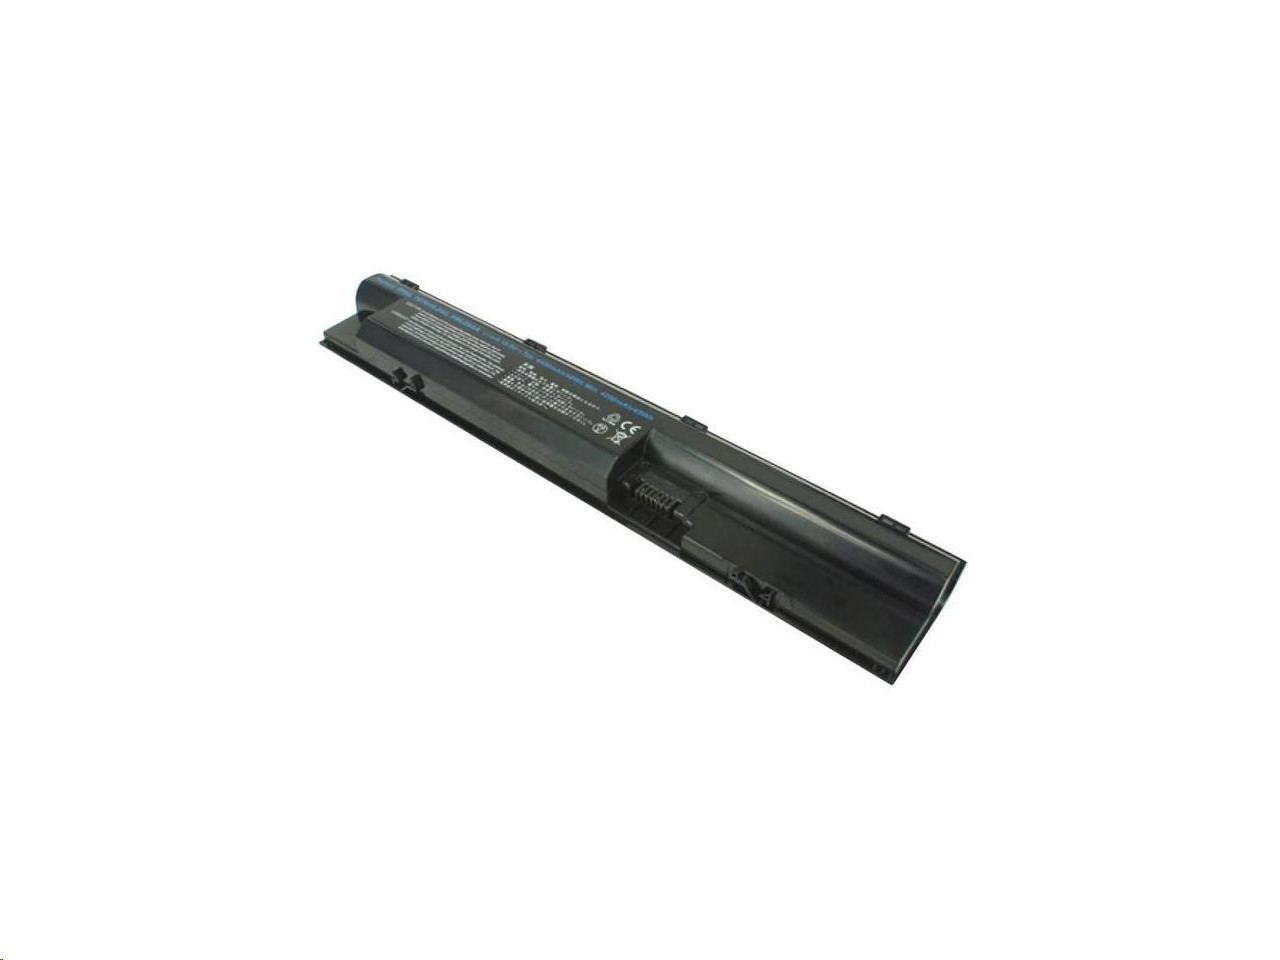 e-Replacements Laptop Battery Li-Ion 10.8V 5200mAh/56Wh For HP ProBook H6L26AA H6L26AA-ER